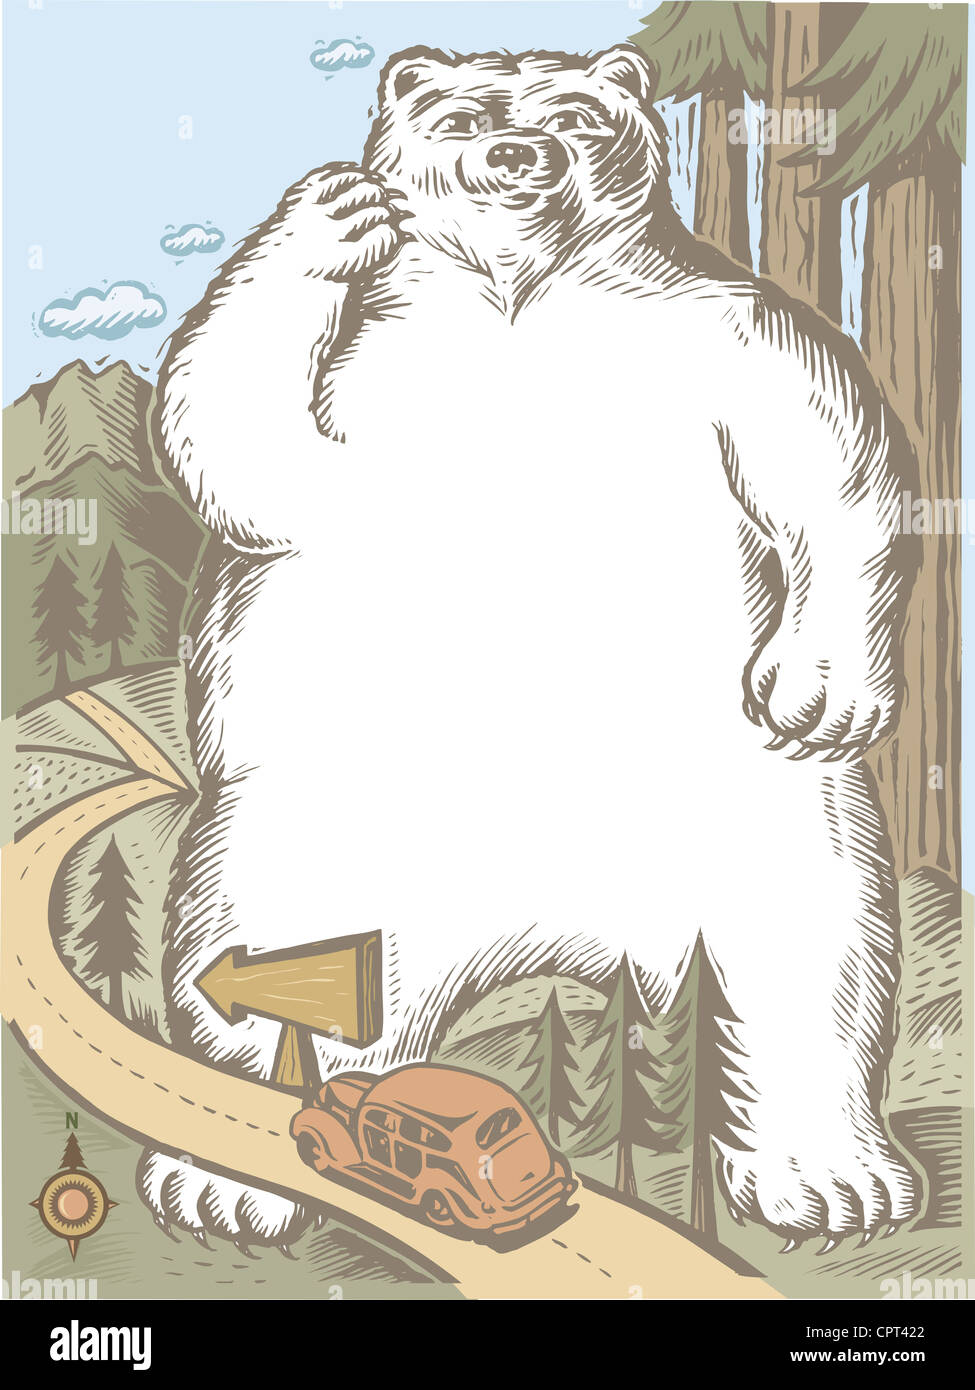 A giant bear standing near a road - Stock Image